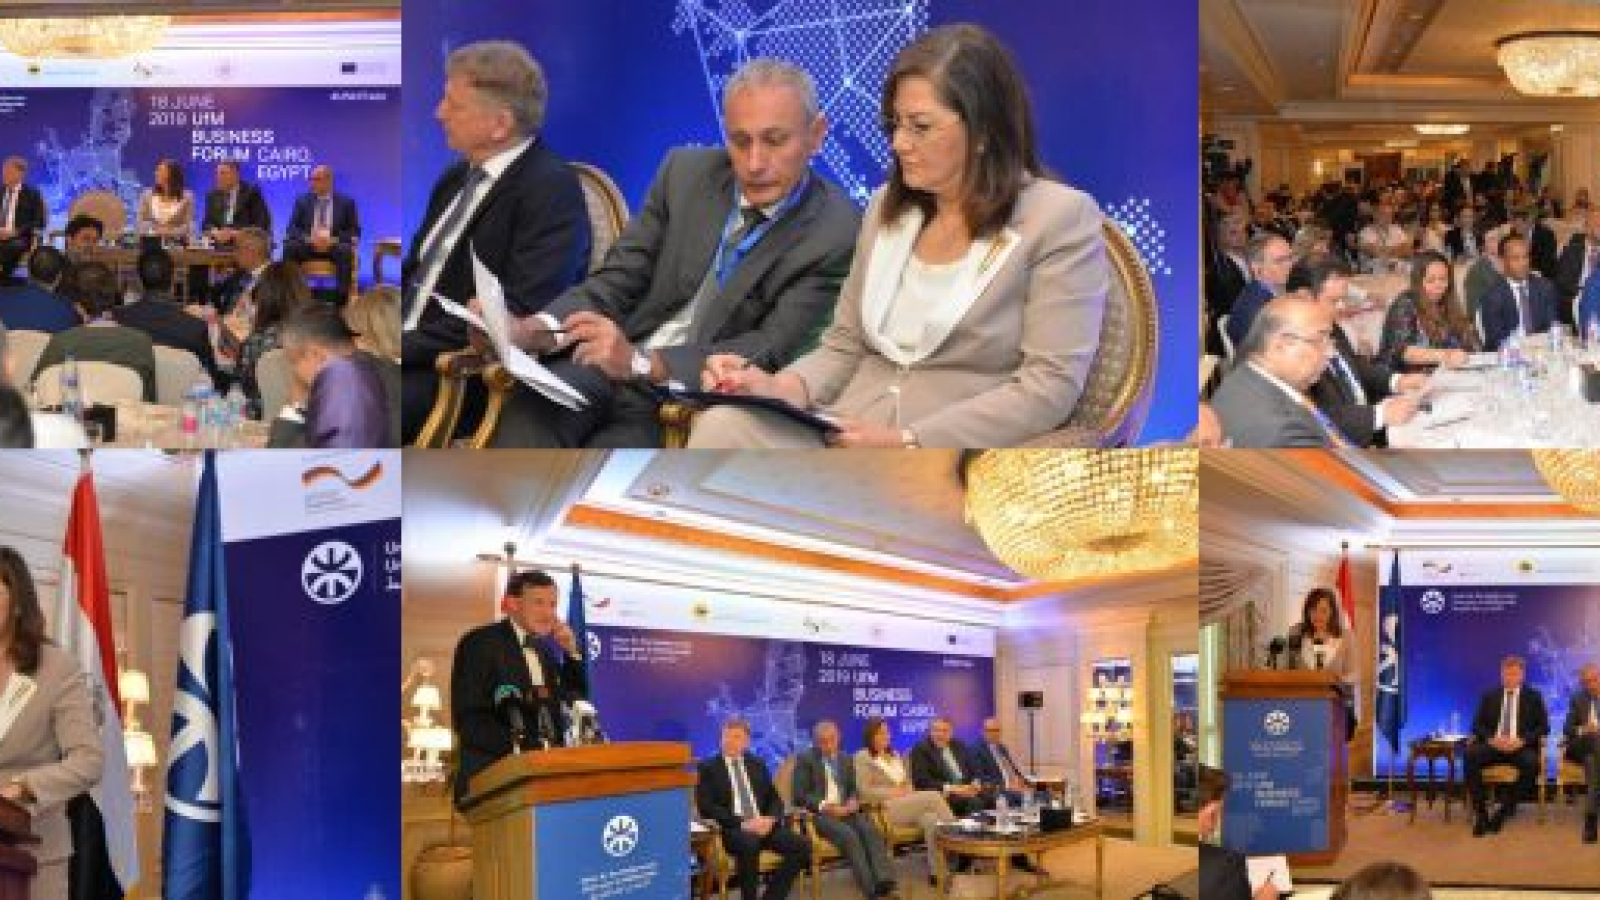 First Union for the Mediterranean Regional Business Forum to promote the Trade Agenda and foster economic integration in the region